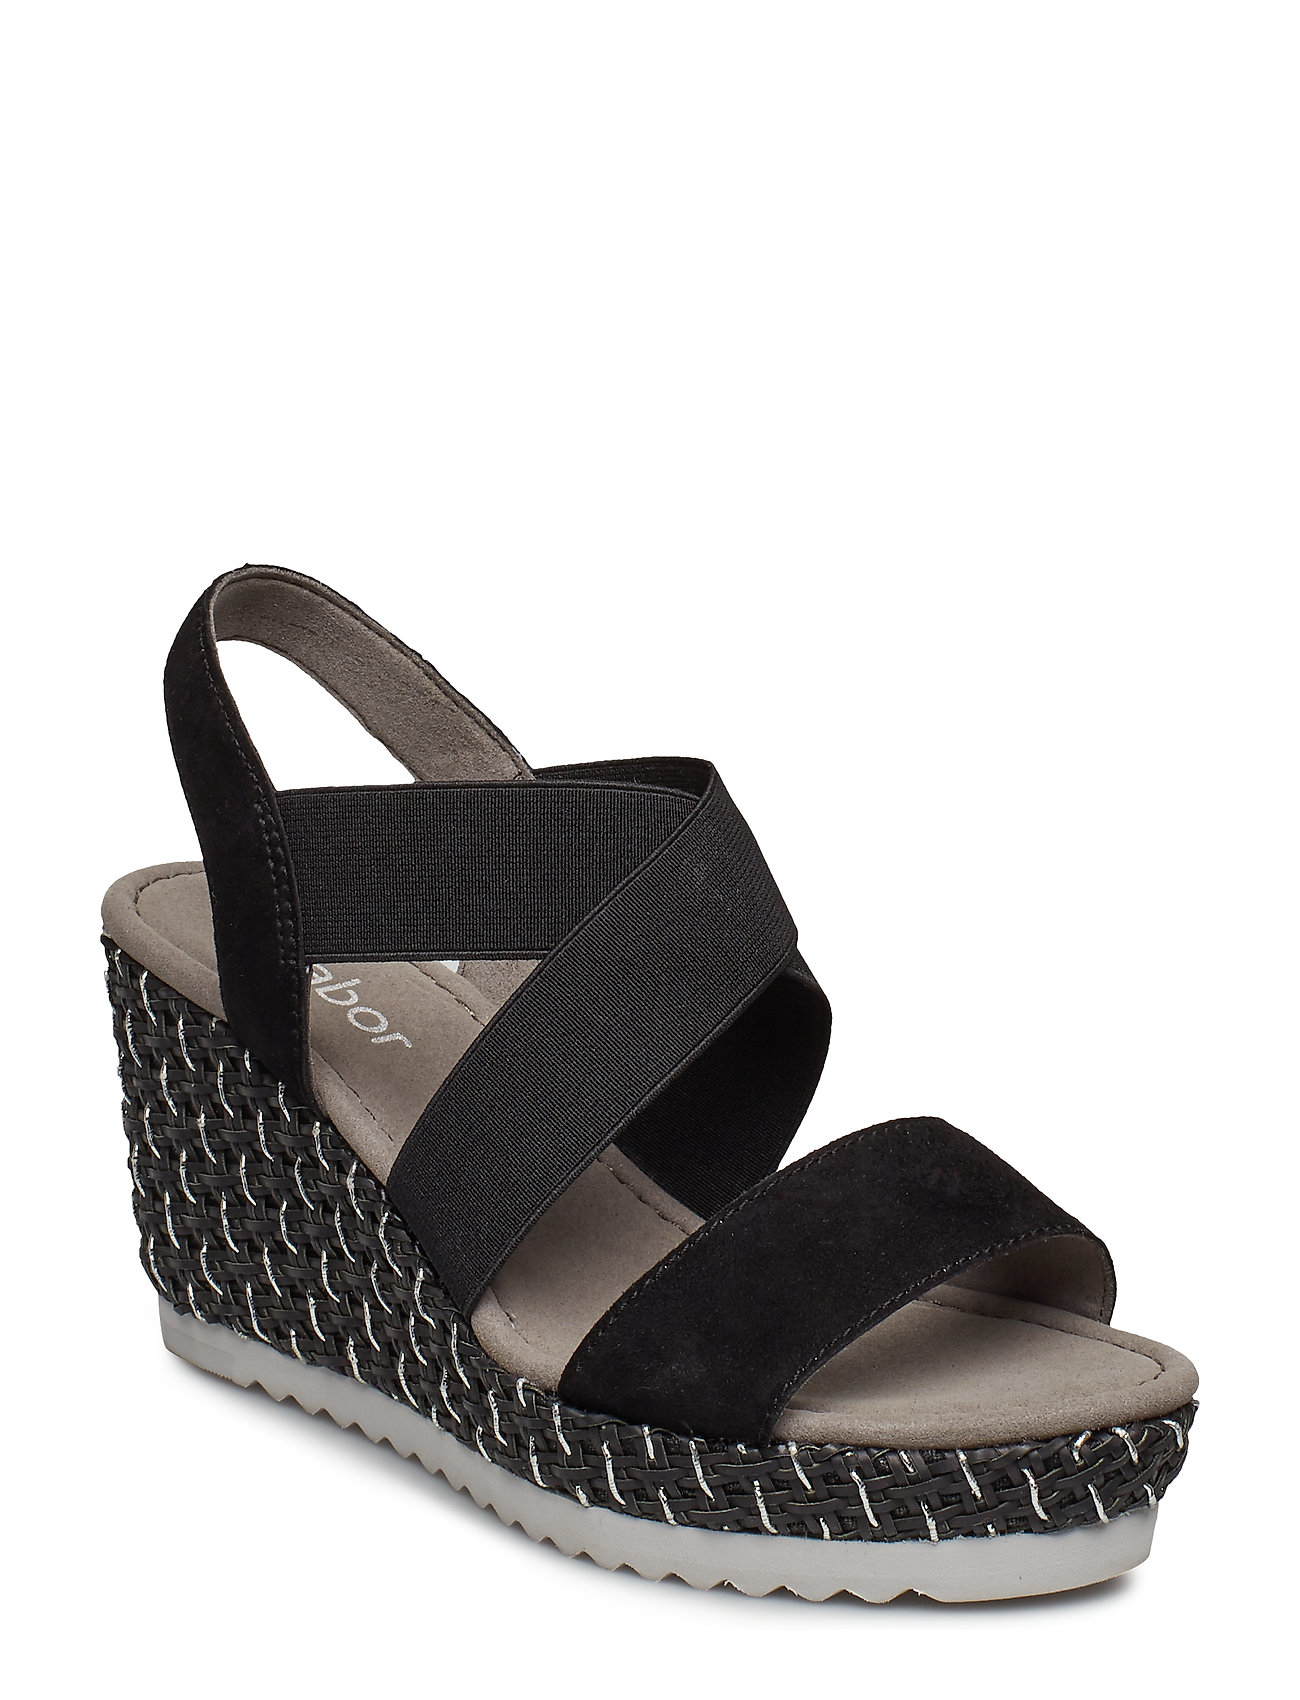 bcd52592cbe0 Sort Gabor Sling Sandals espadrillos med kilehæl for dame - Pashion.dk